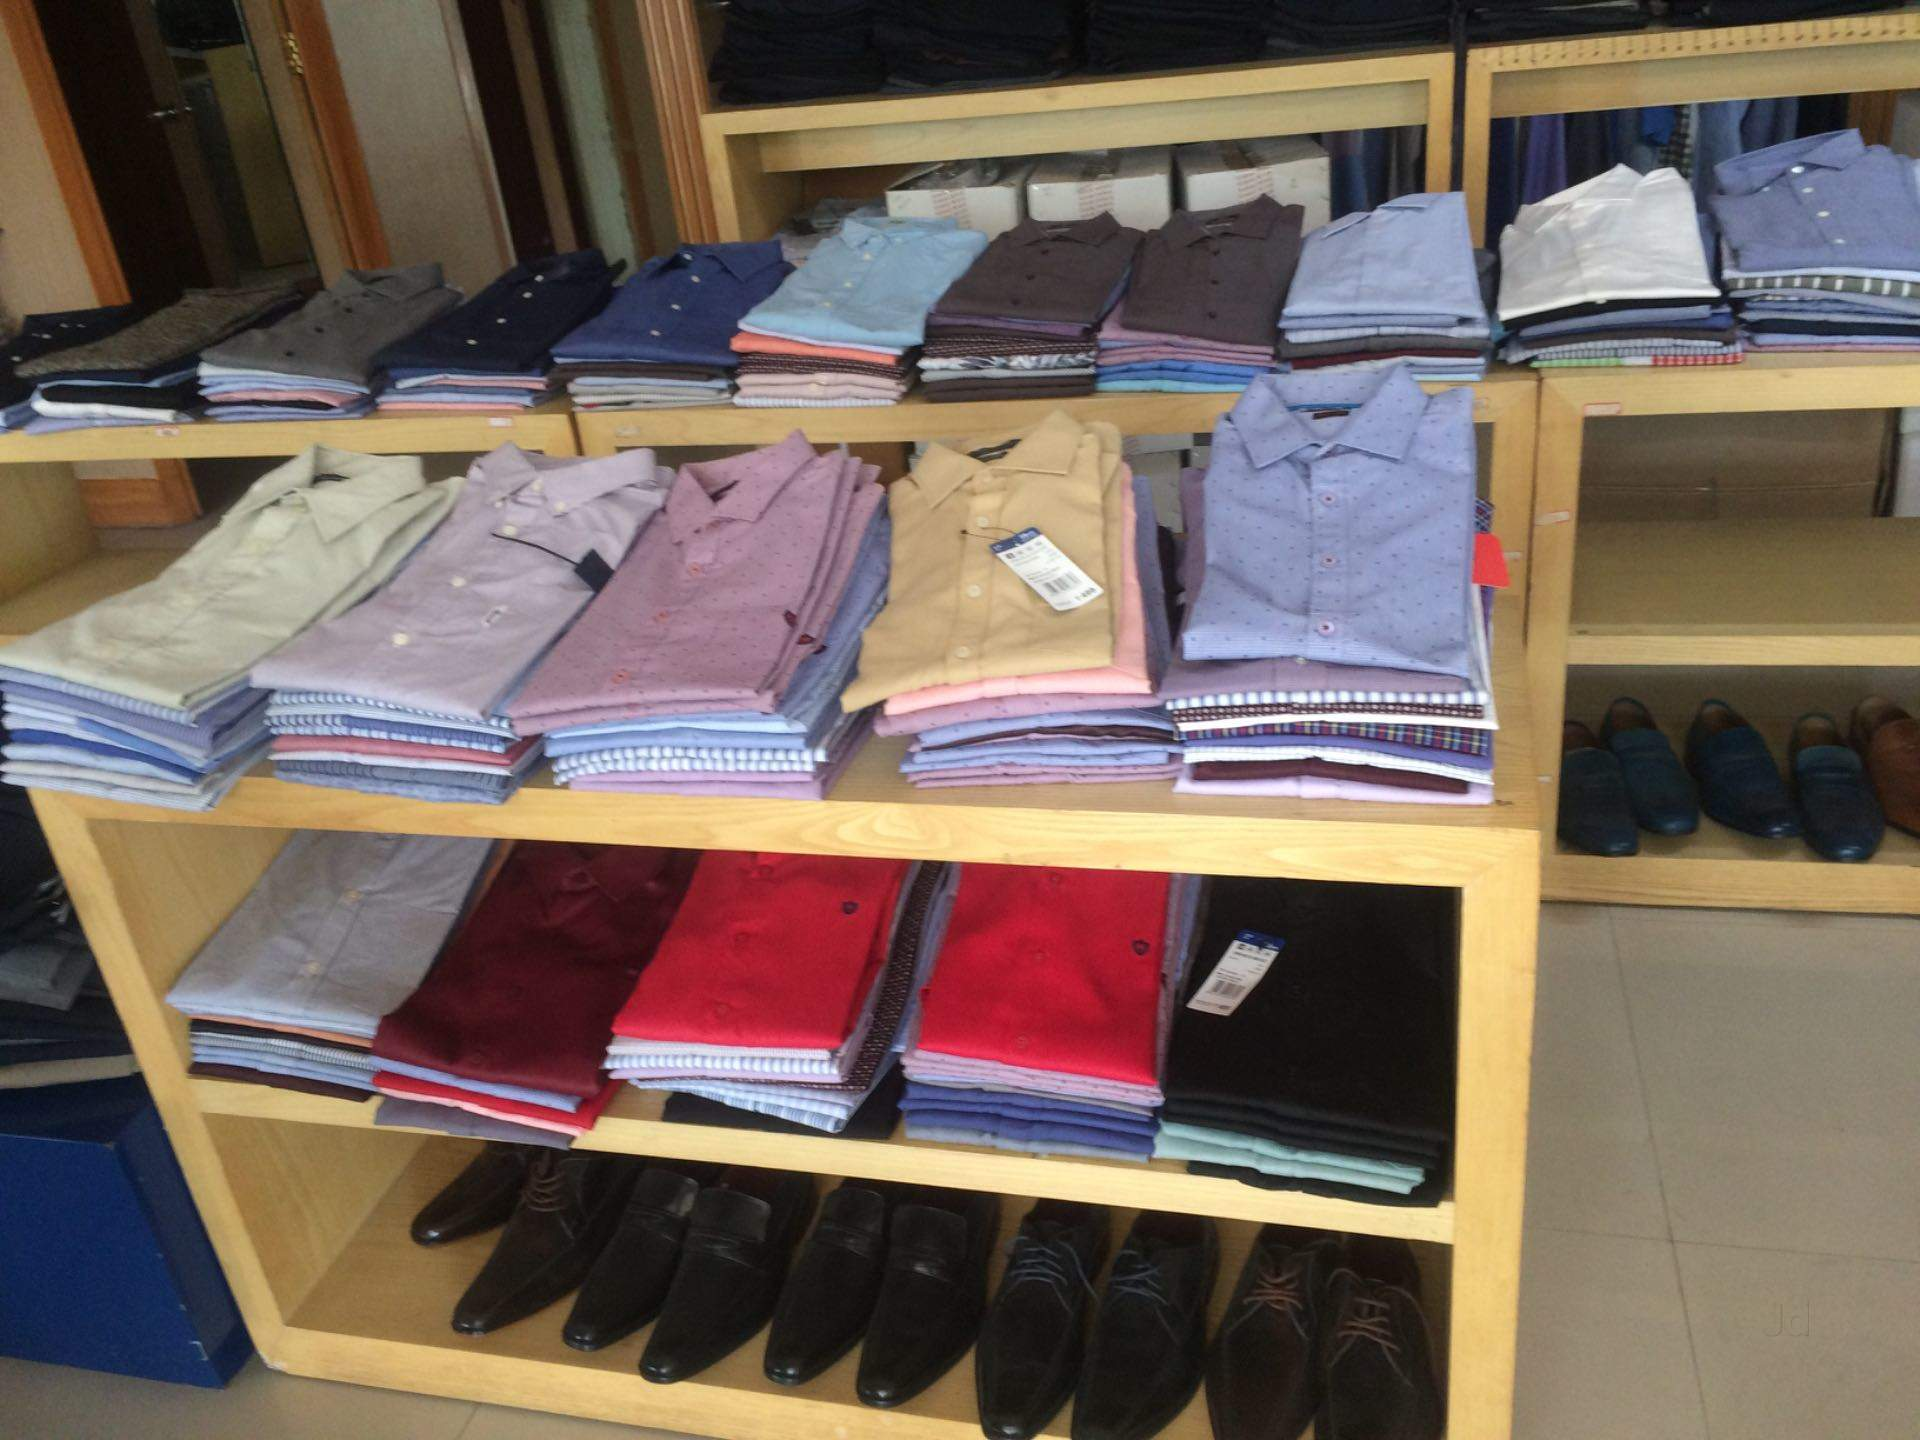 Top Austin Reed Casual Shirt Retailers In Jp Nagar 7th Phase Best Austin Reed Casual Shirt Retailers Bangalore Justdial